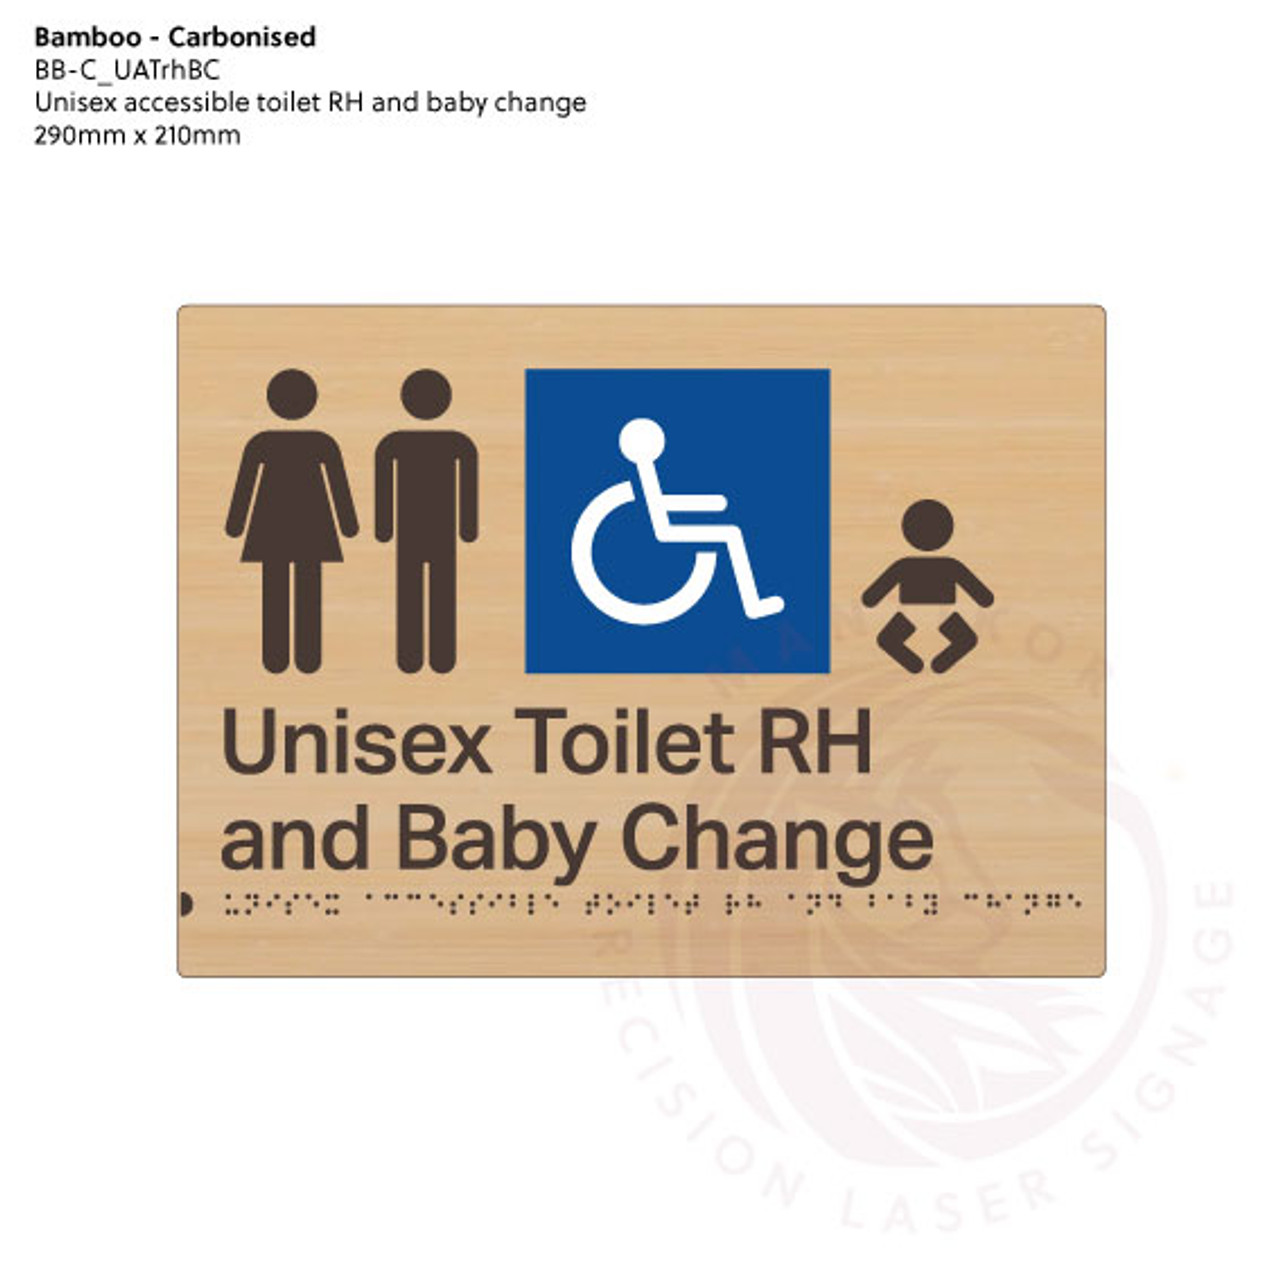 Carbonised Bamboo Tactile Braille Signs - Unisex Toilet RH and Baby Change